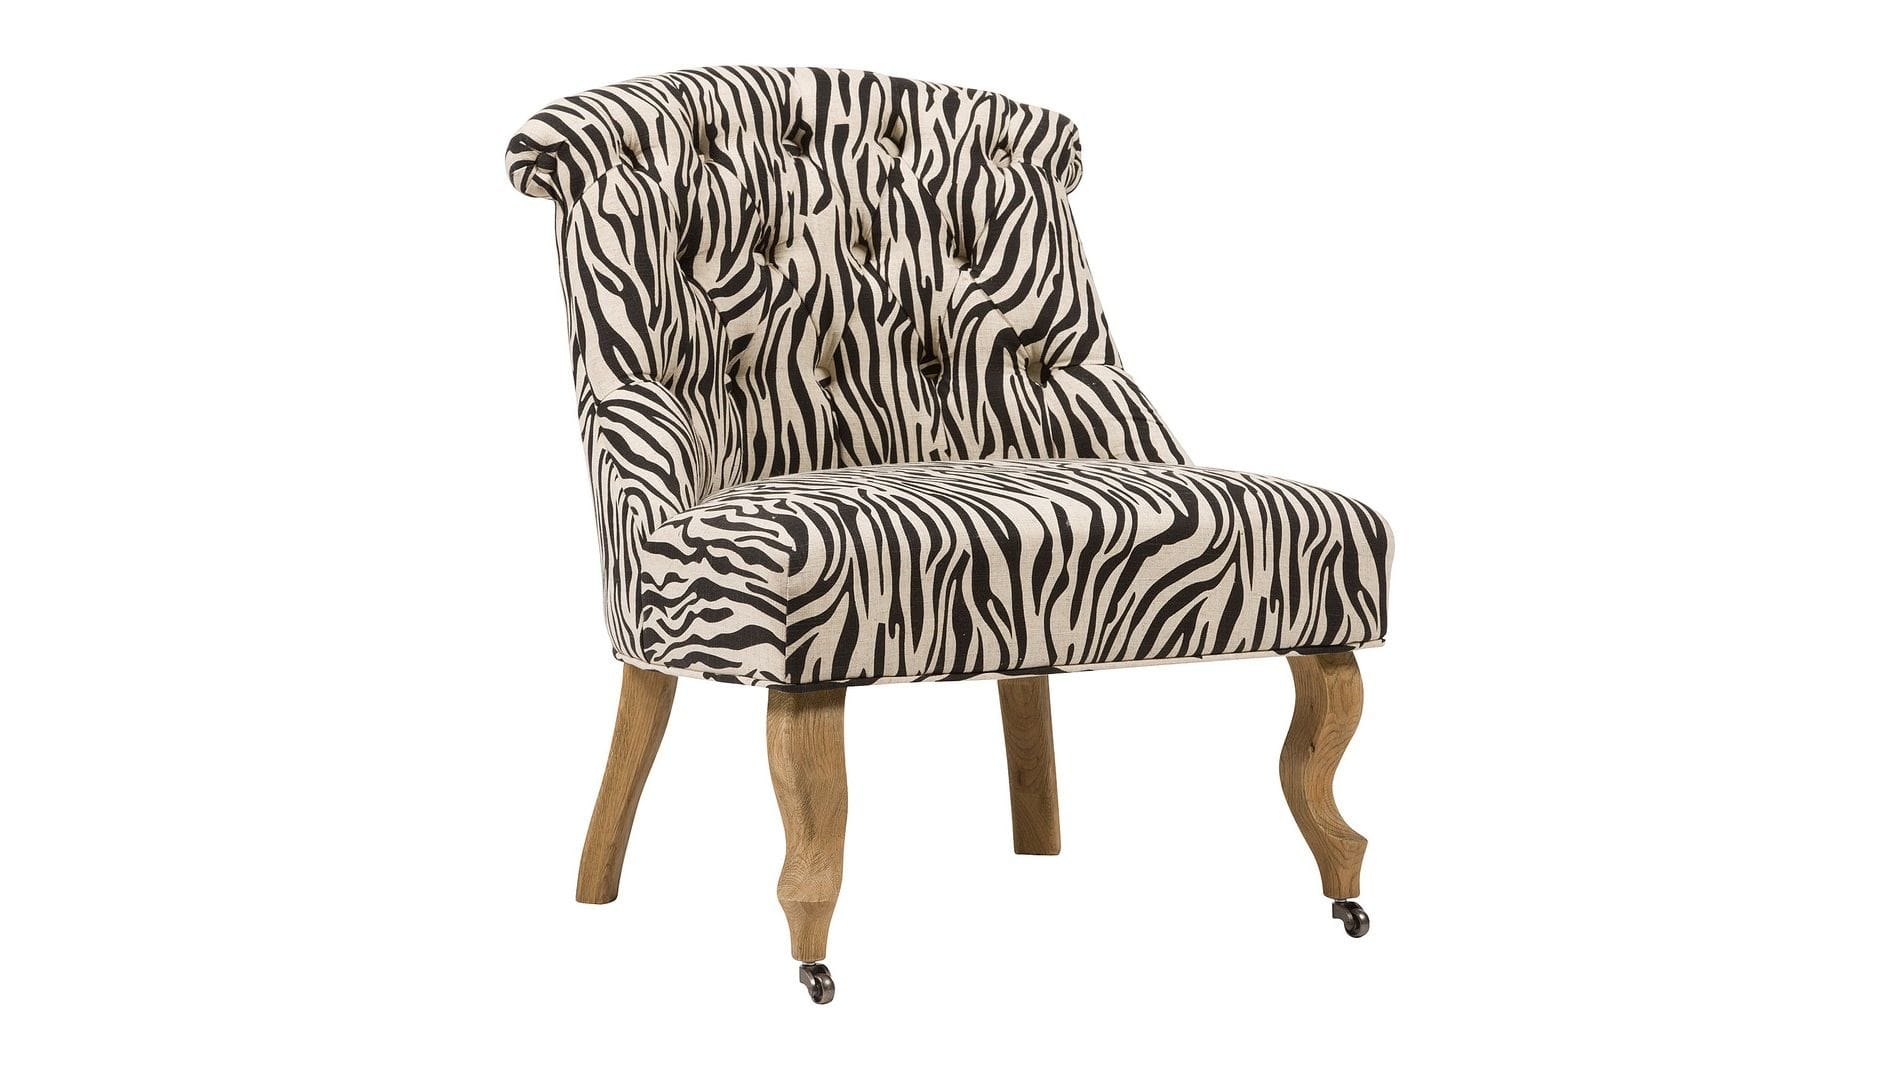 Кресло Amelie French Country Chair Зебра М